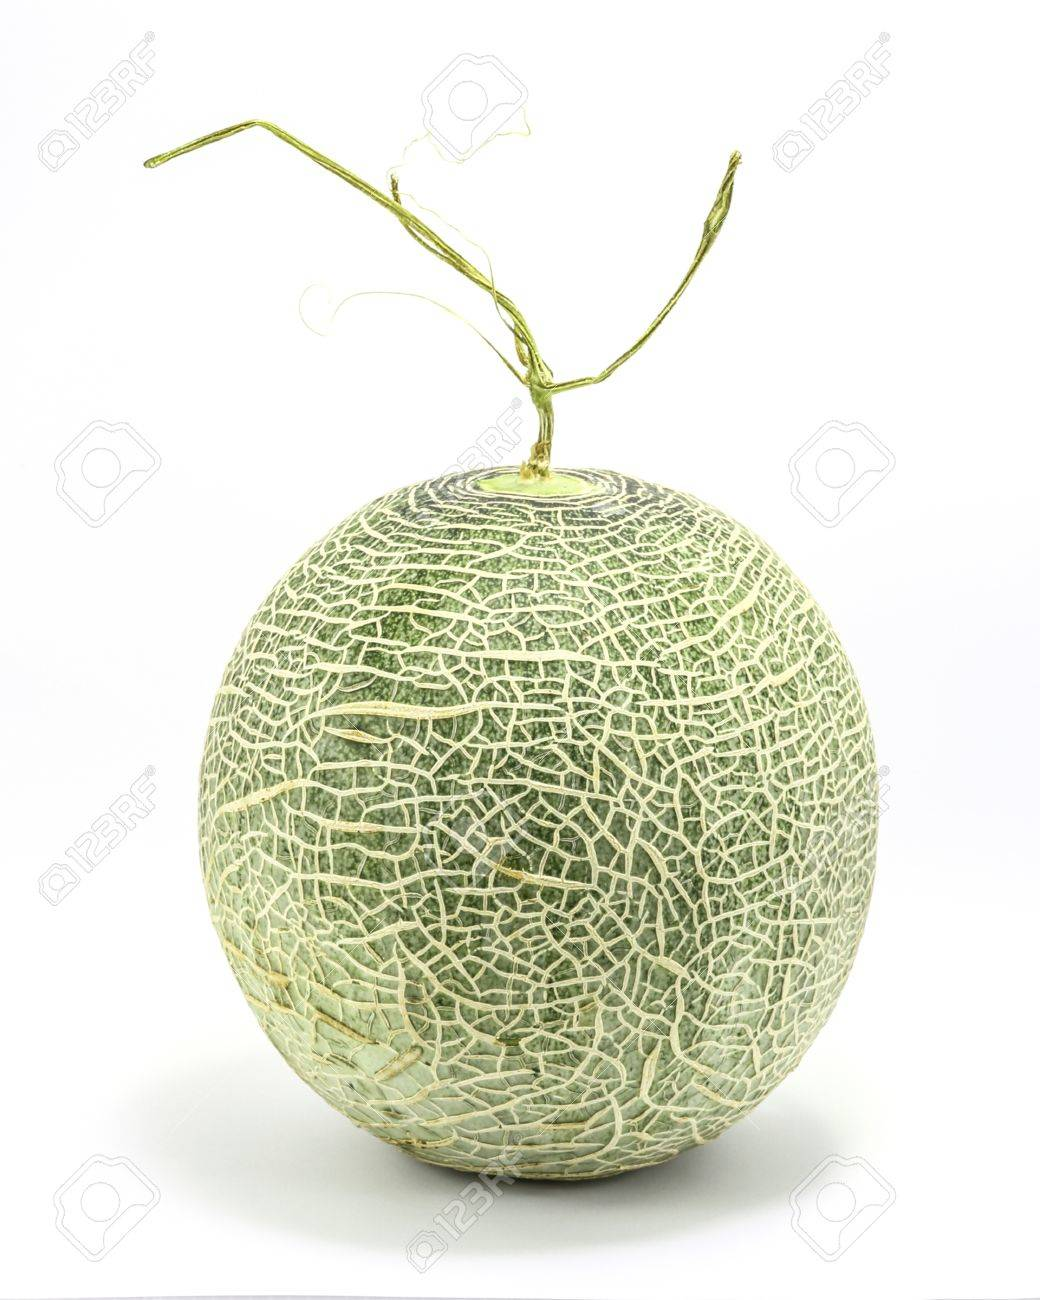 Cantaloupe Rock Melon Green Cantelope Cantaloupe Muskmelon Mushmelon Stock Photo Picture And Royalty Free Image Image 50766976 The cantaloupe, rockmelon (australia), sweet melon, or spanspek (south africa) is a melon that is a variety of the muskmelon species (cucumis melo) from the family cucurbitaceae. cantaloupe rock melon green cantelope cantaloupe muskmelon mushmelon stock photo picture and royalty free image image 50766976